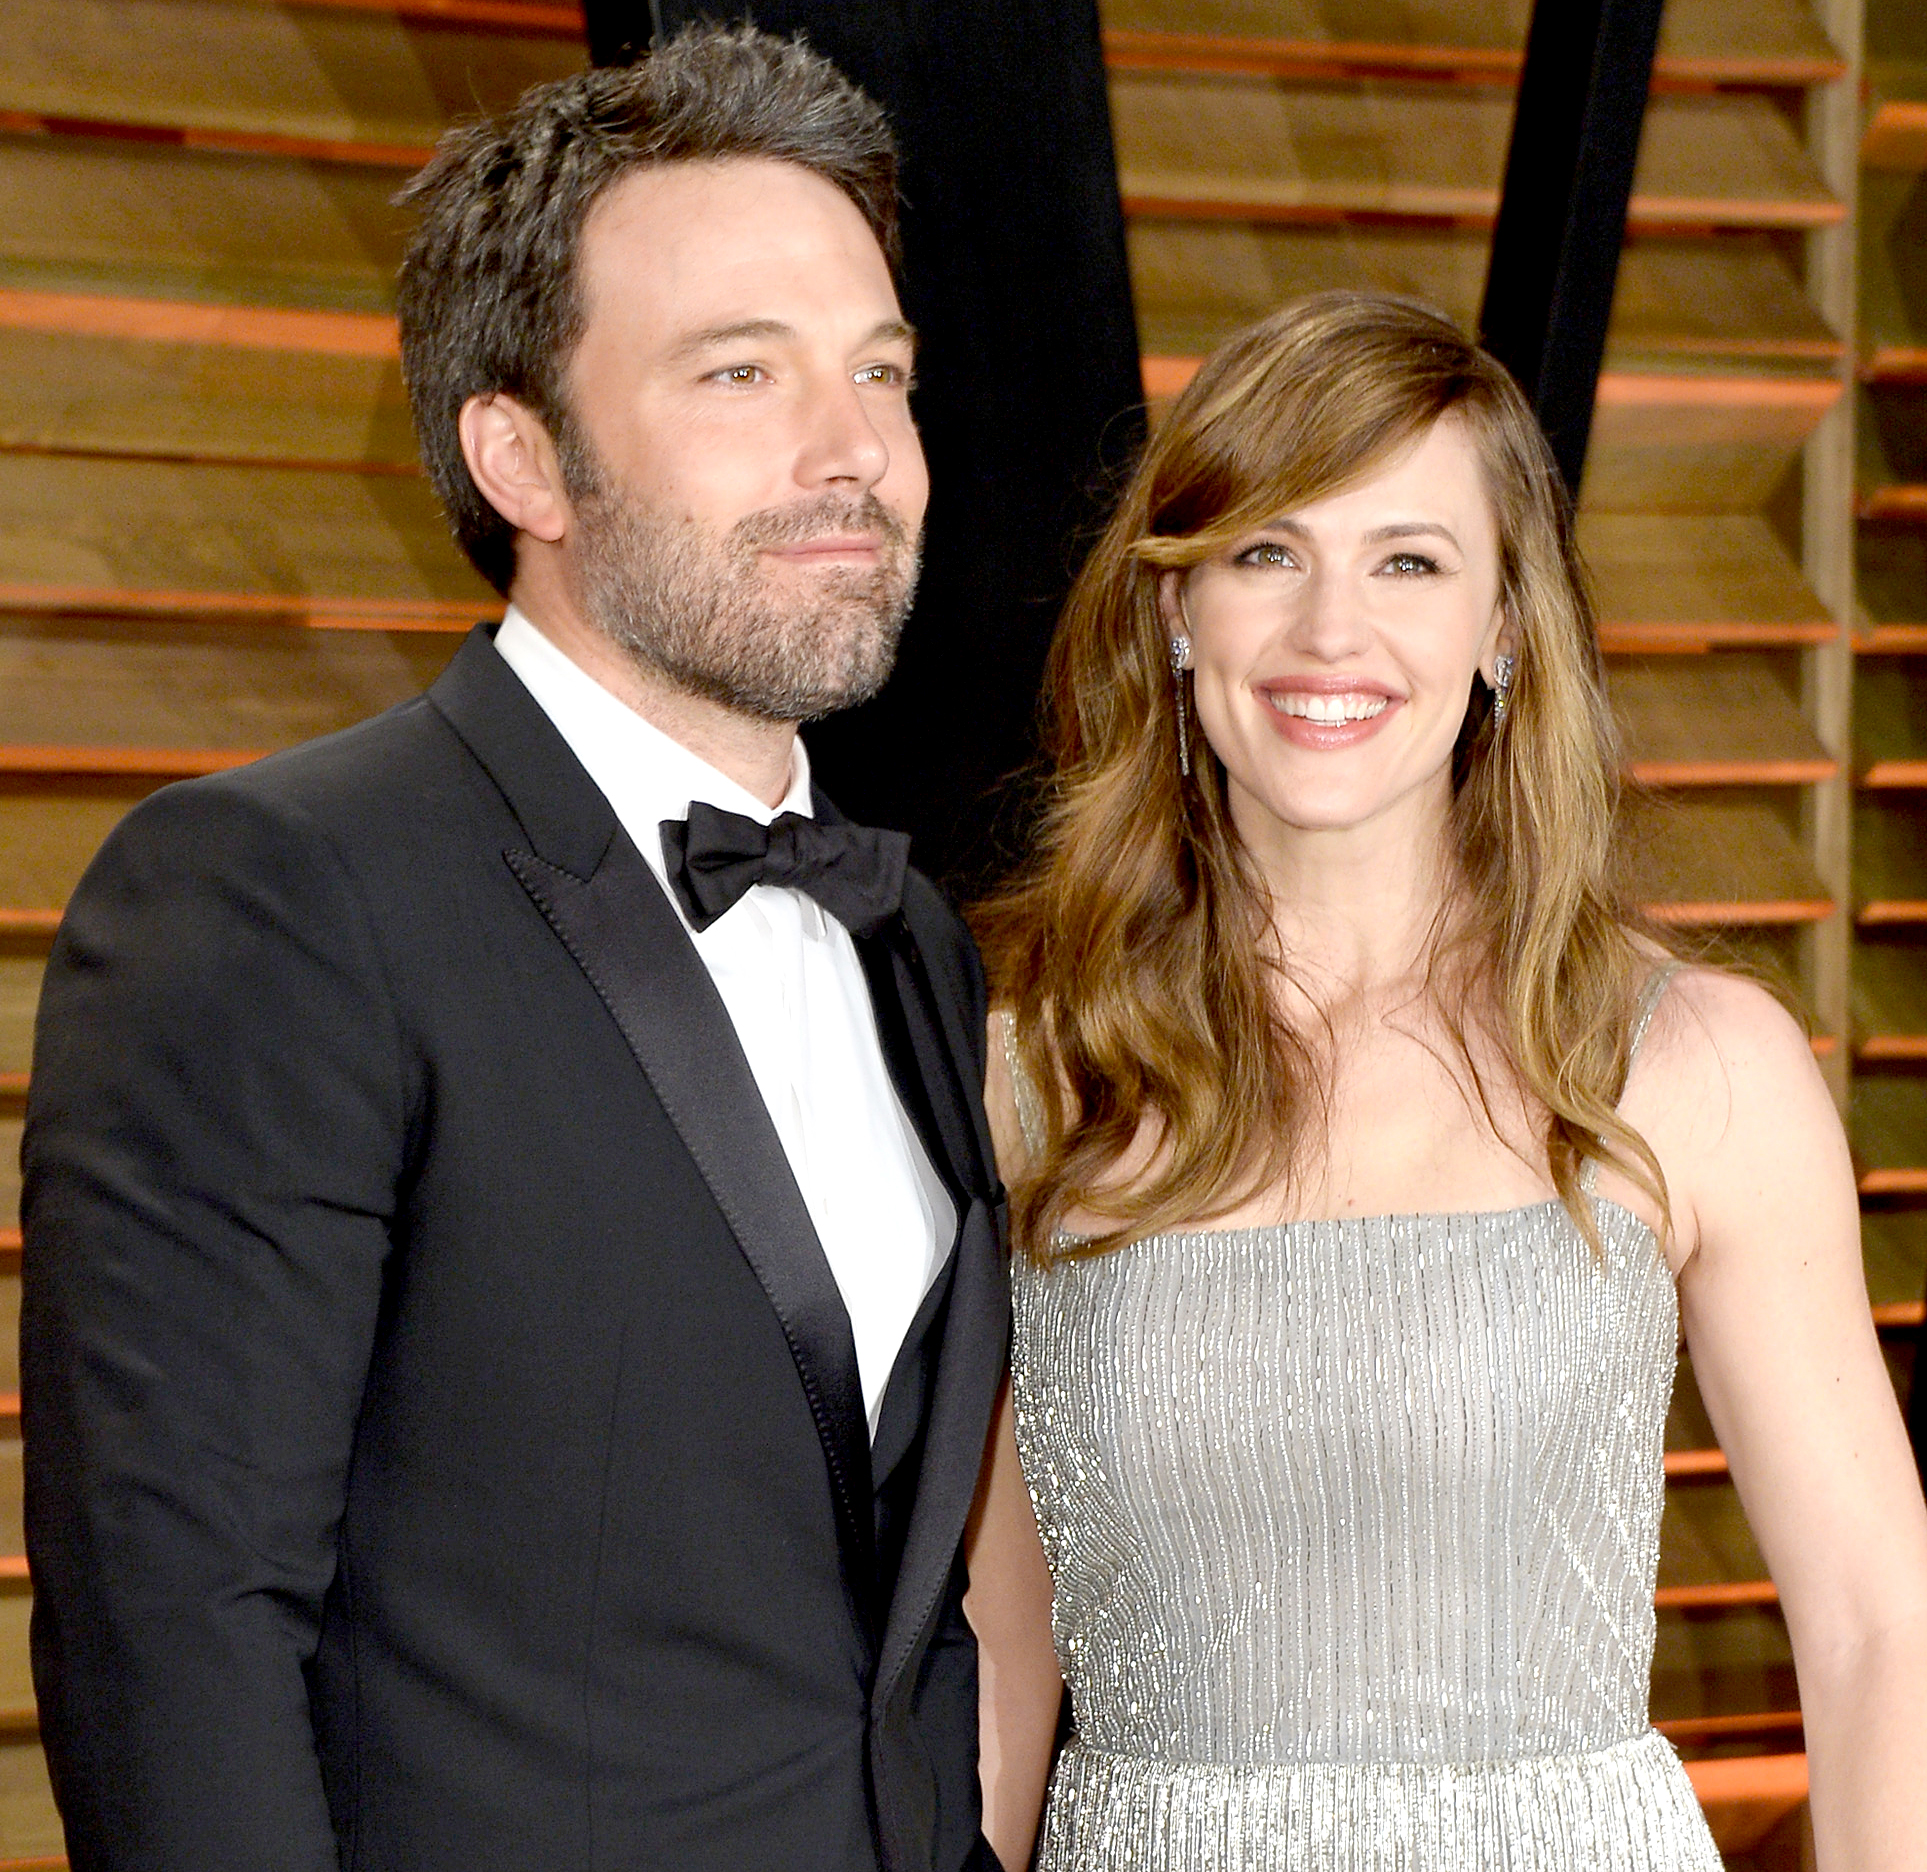 Ben-Affleck-and-Jennifer-Garner-coparenting - WEST HOLLYWOOD, CA – MARCH 02: Actors Ben Affleck (L) and Jennifer Garner attend the 2014 Vanity Fair Oscar Party hosted by Graydon Carter on March 2, 2014 in West Hollywood, California. (Photo by Pascal Le Segretain/Getty Images)